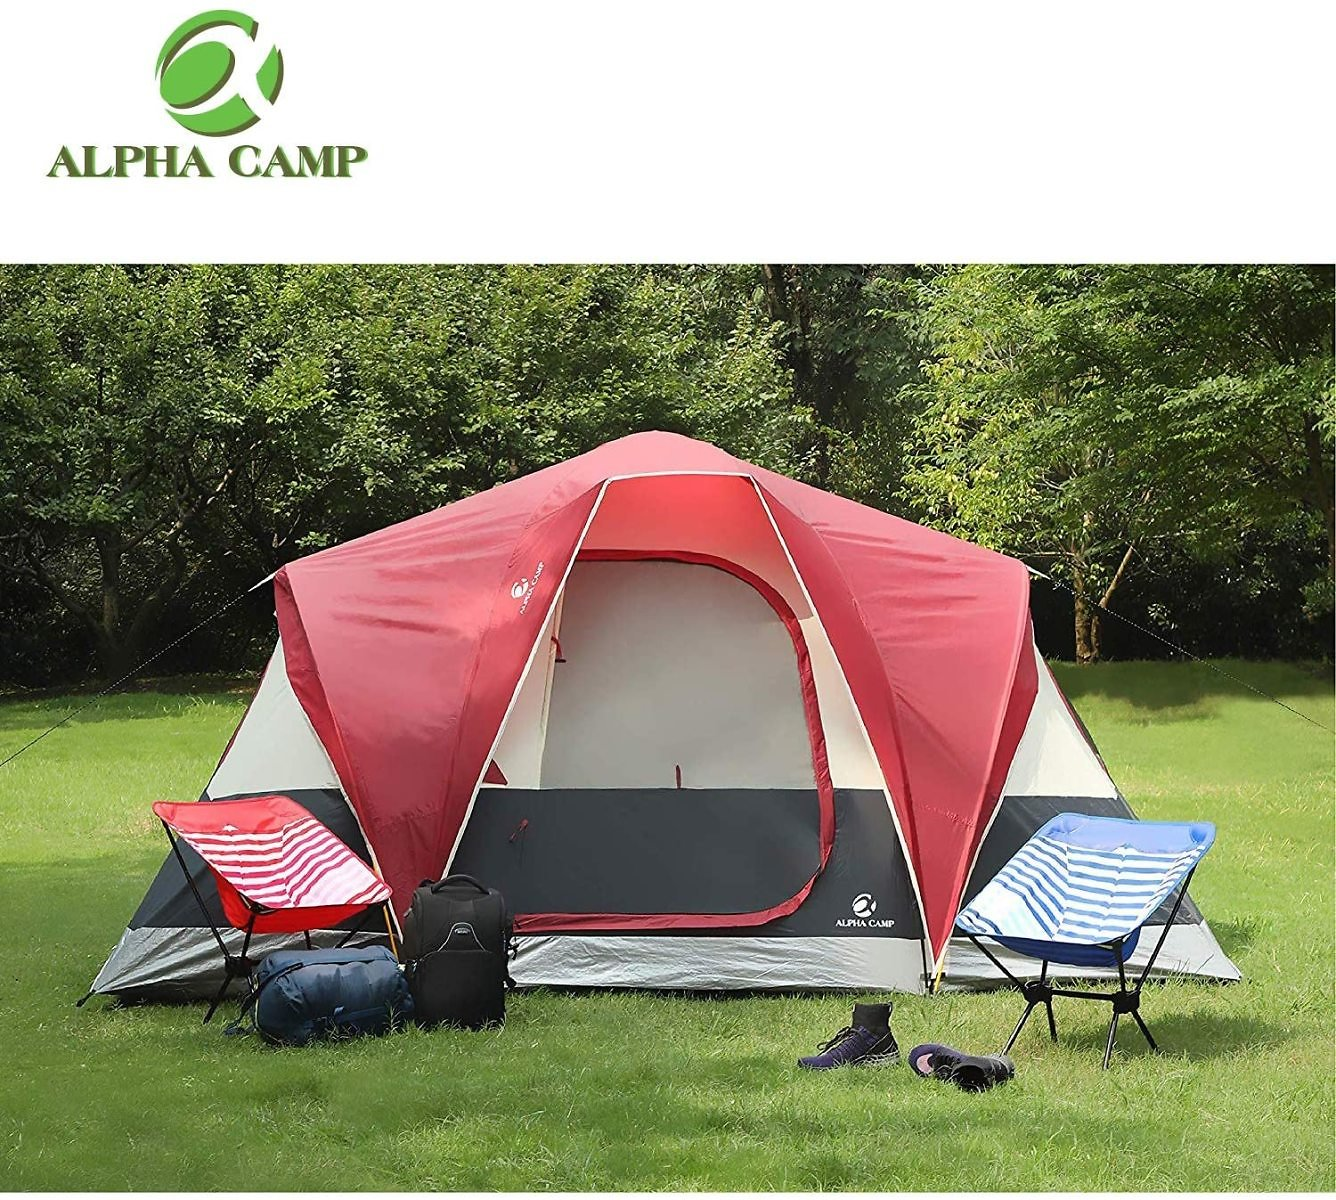 ALPHA CAMP 6 Person Tent Extended Dome Tent for Camping Waterproof with Rainfly and Carry Bag - 12' X 10' : Sports & Outdoors